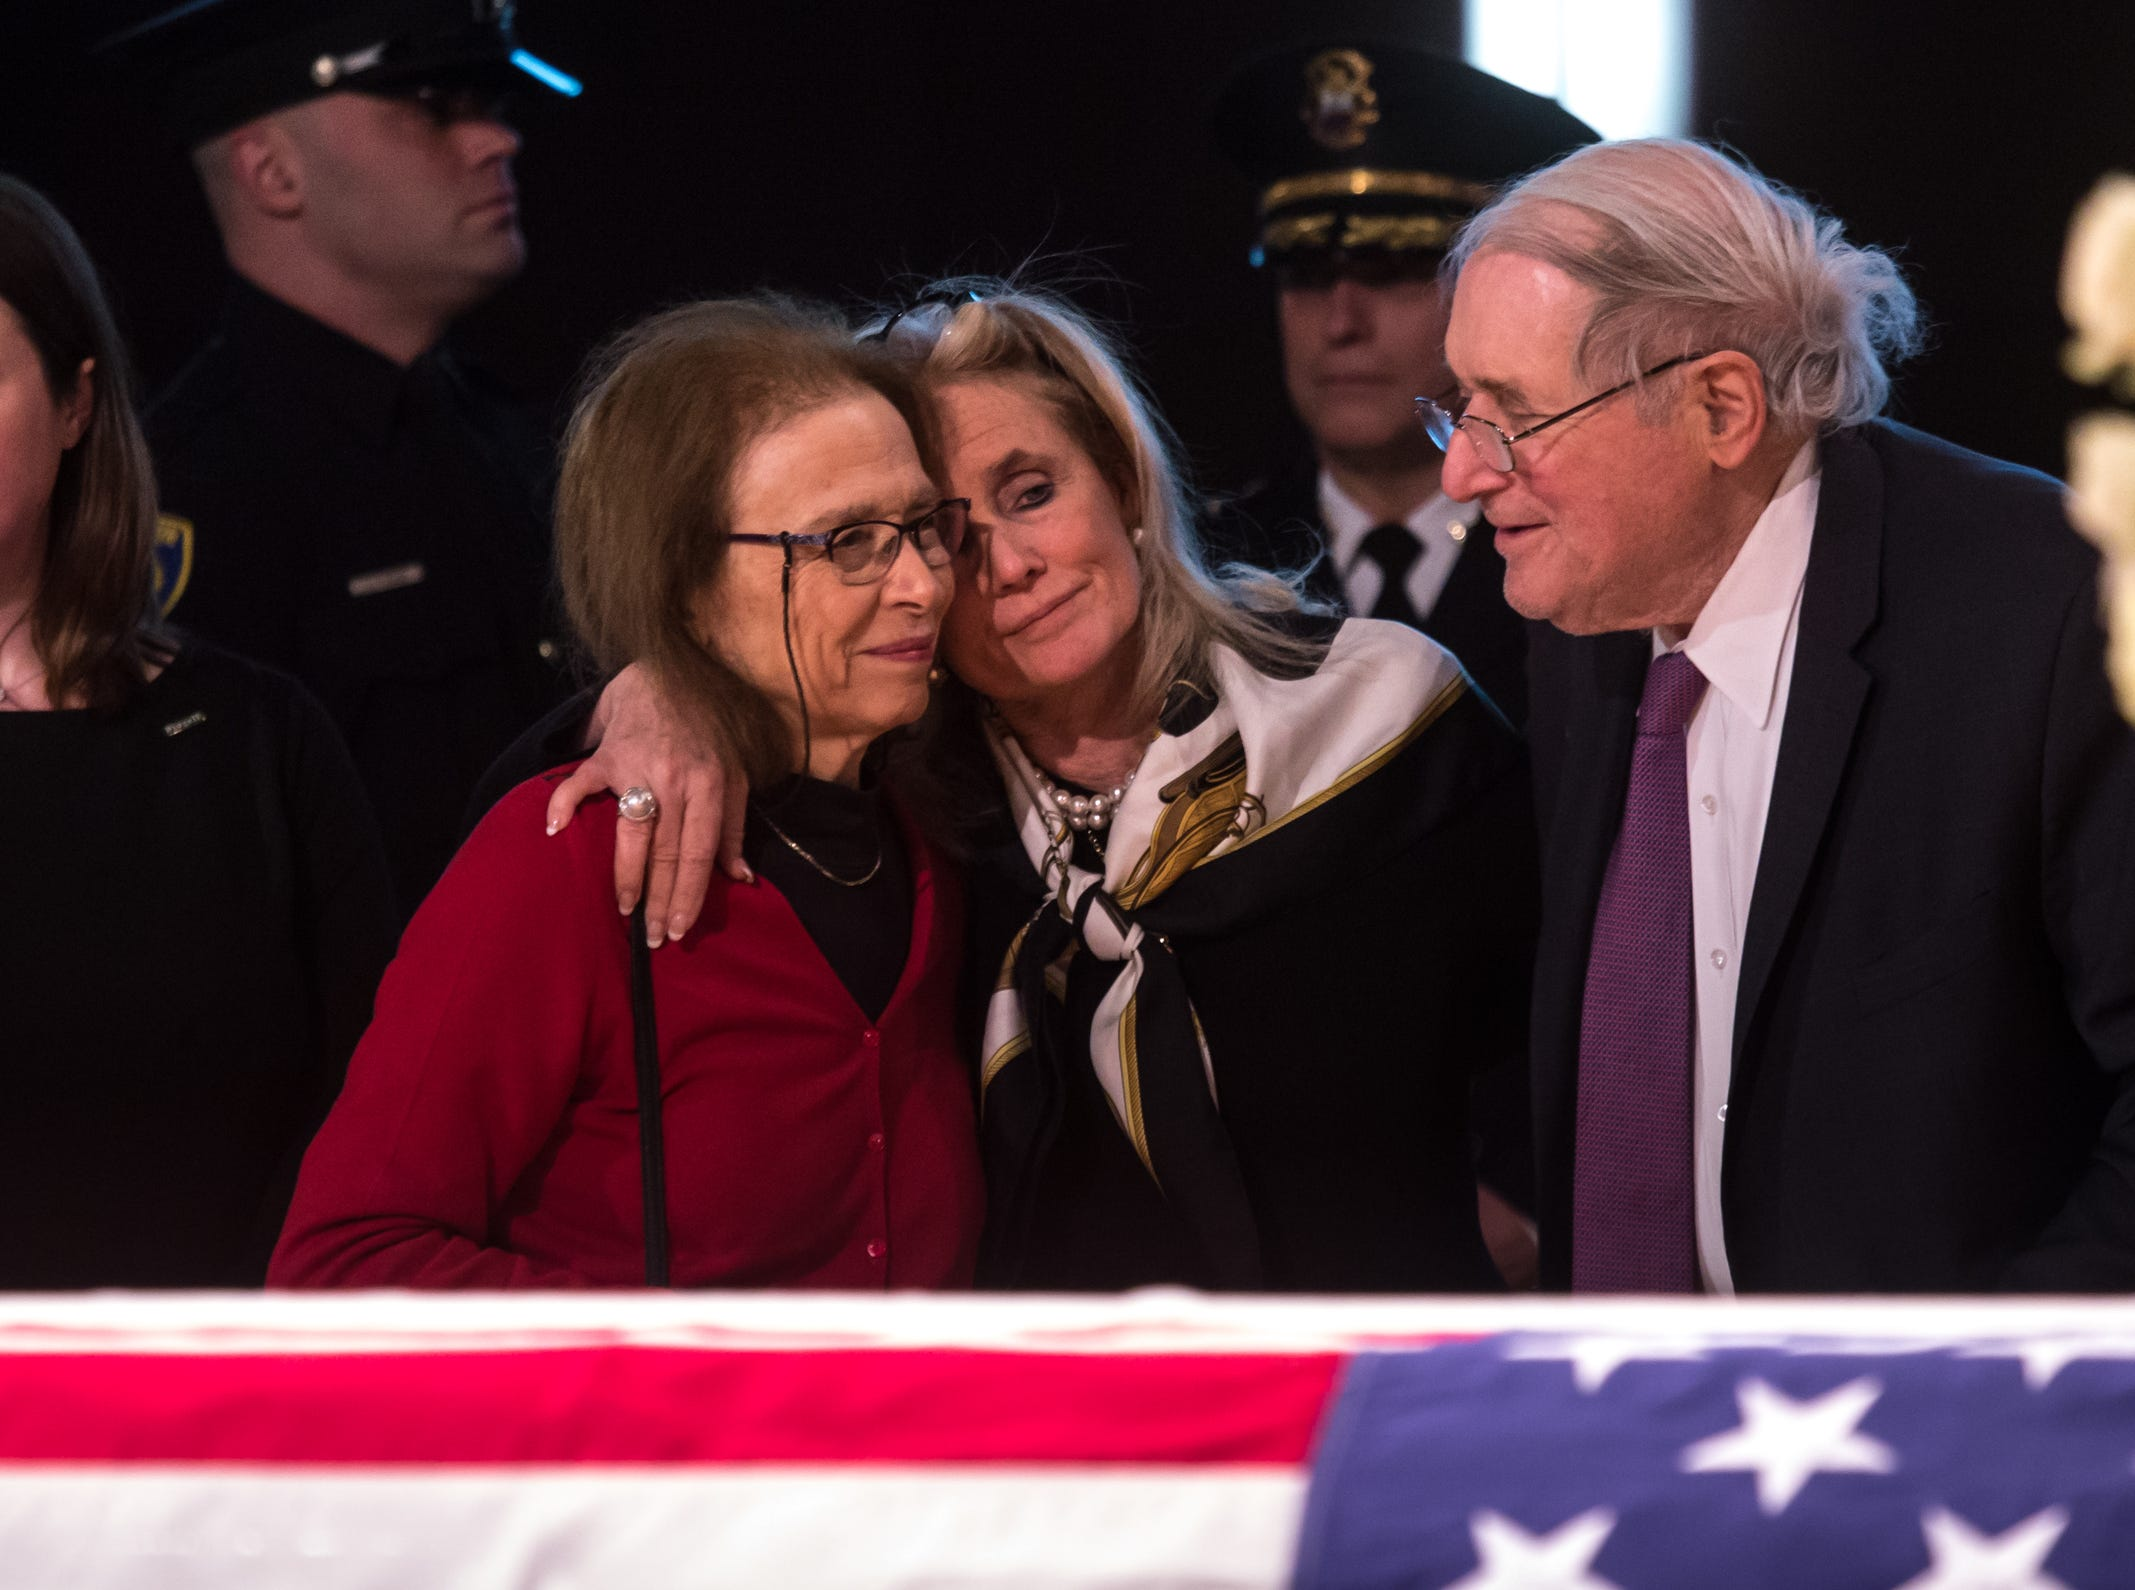 Rep. Debbie Dingell (center) stands with former U.S. Senator Carl Levin and his wife Barbara Levin by the casket of her late husband former U.S. Rep. John D. Dingell during his visitation at the Ford Community and Performing Arts Center in Dearborn on Monday, February 11, 2019.